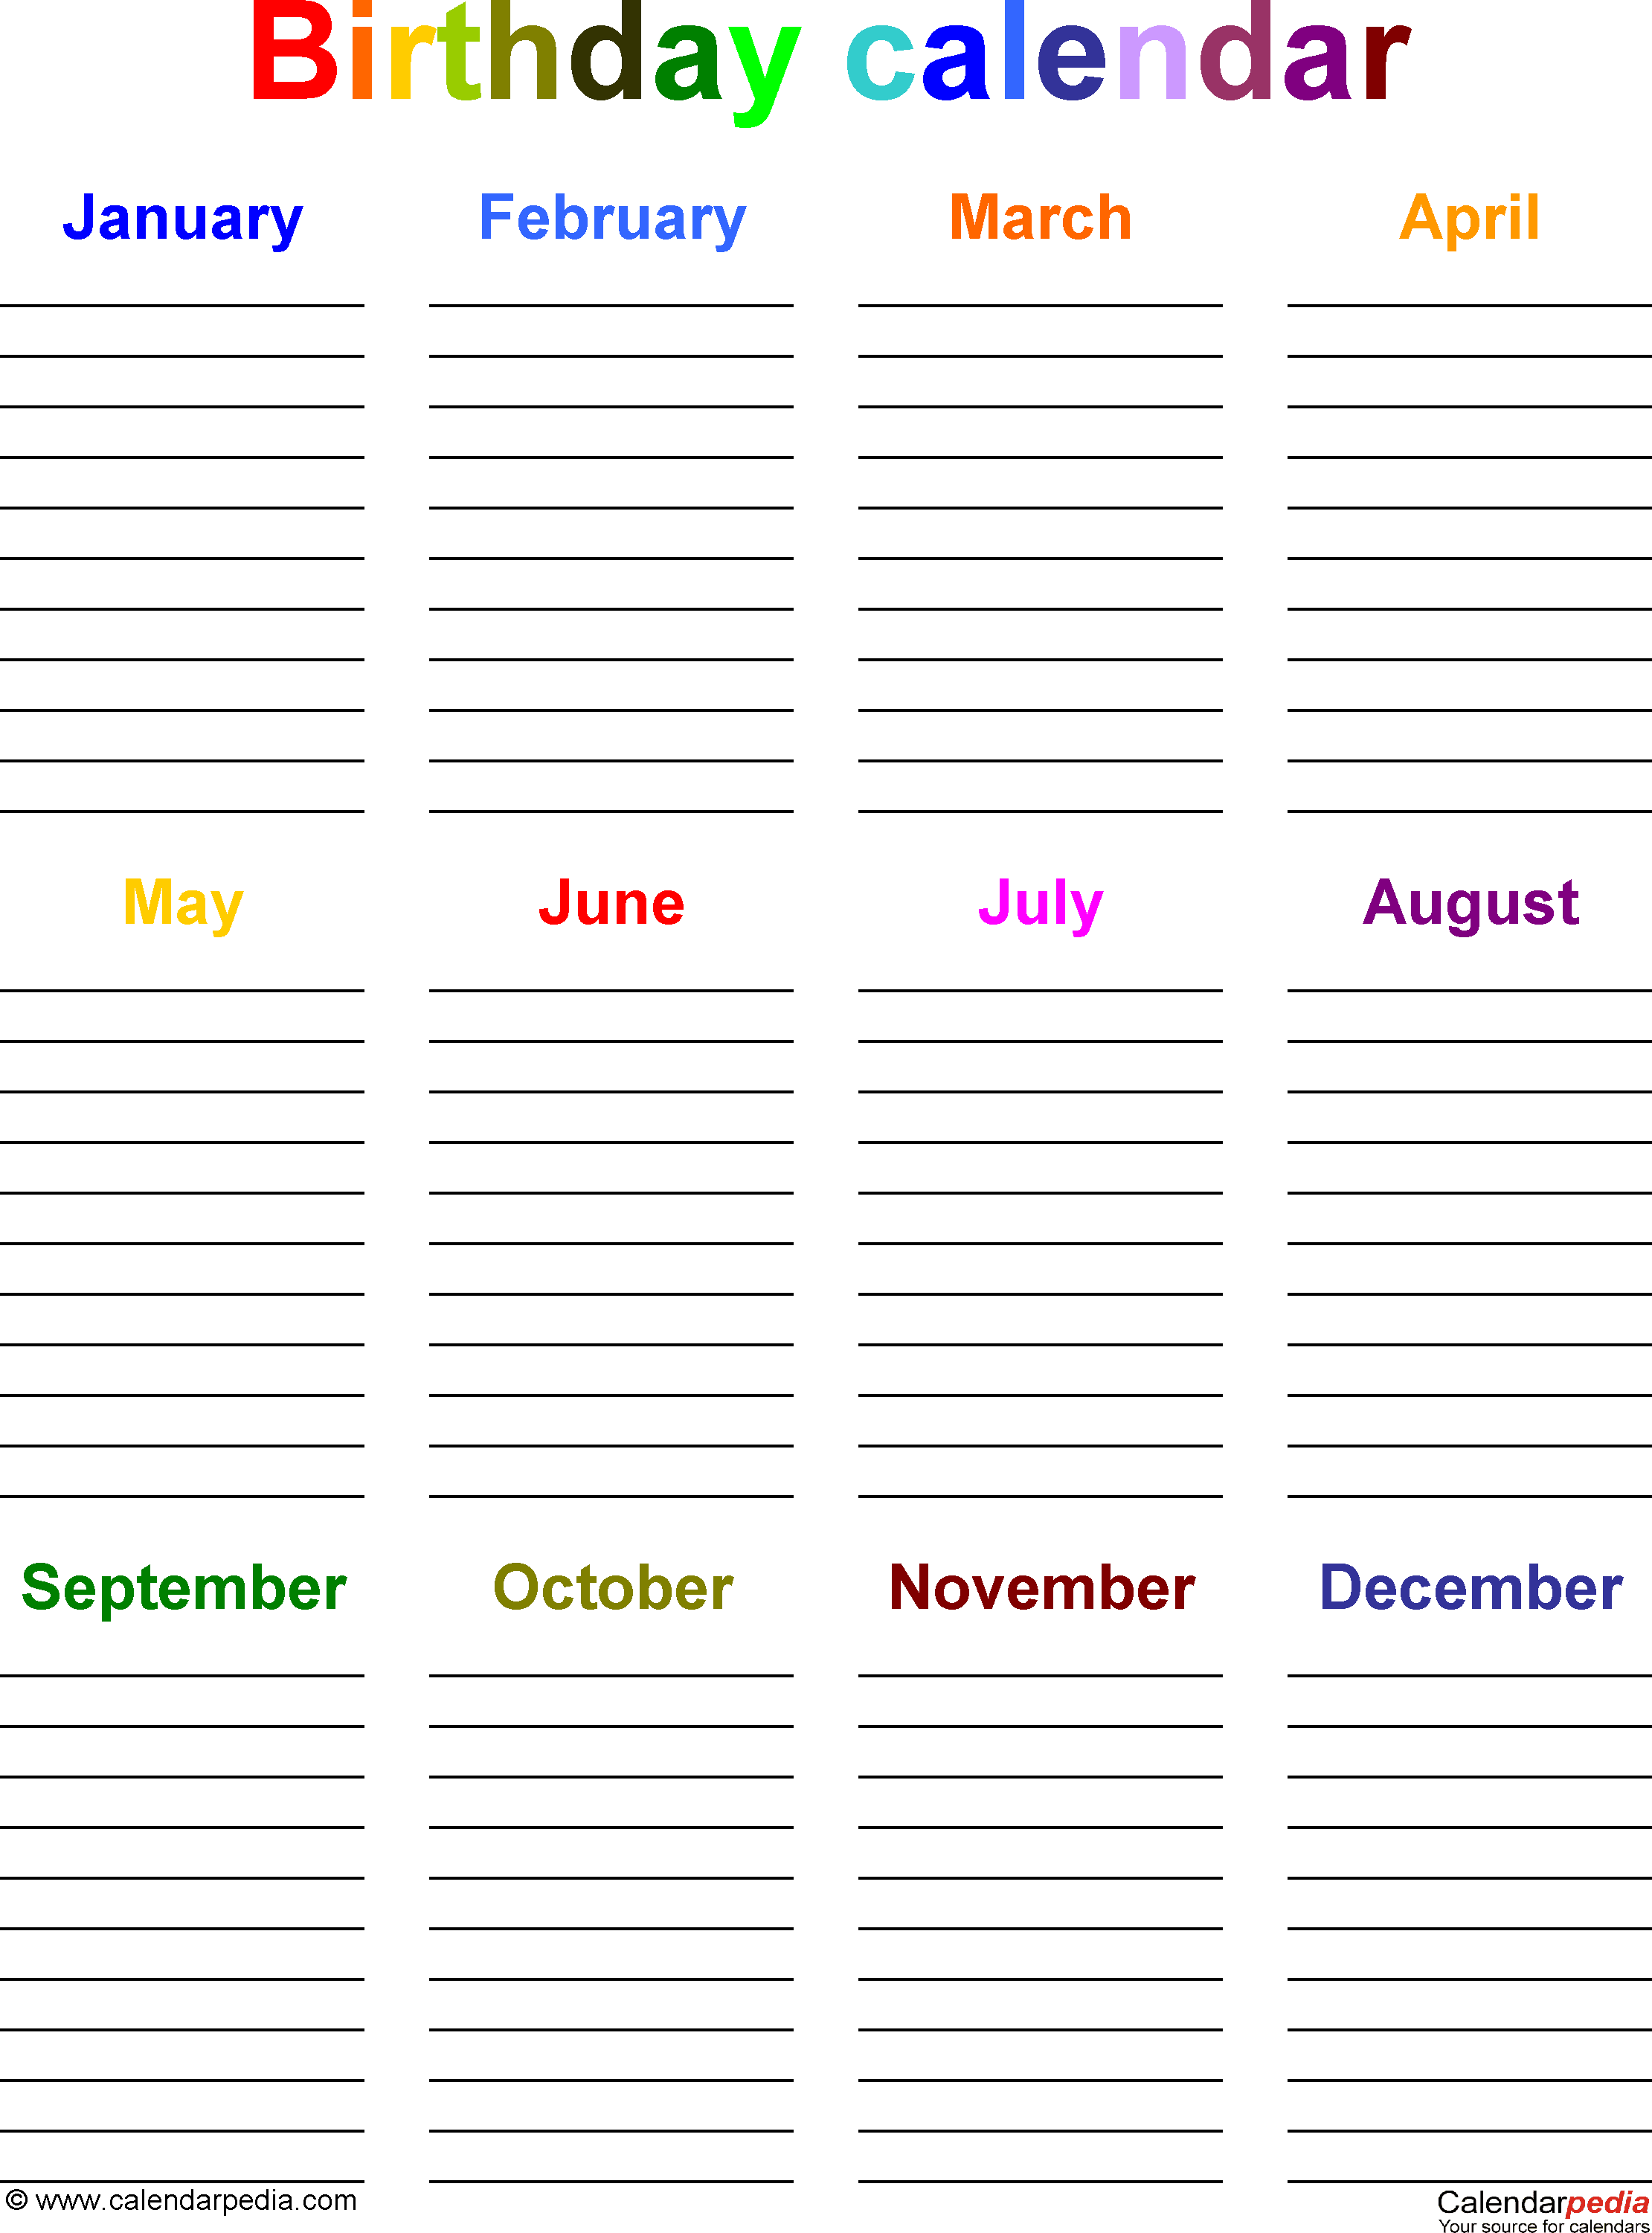 Birthday List Template Free Amusing Template 5 Pdf Template For Birthday Calendar In Color Portrait .